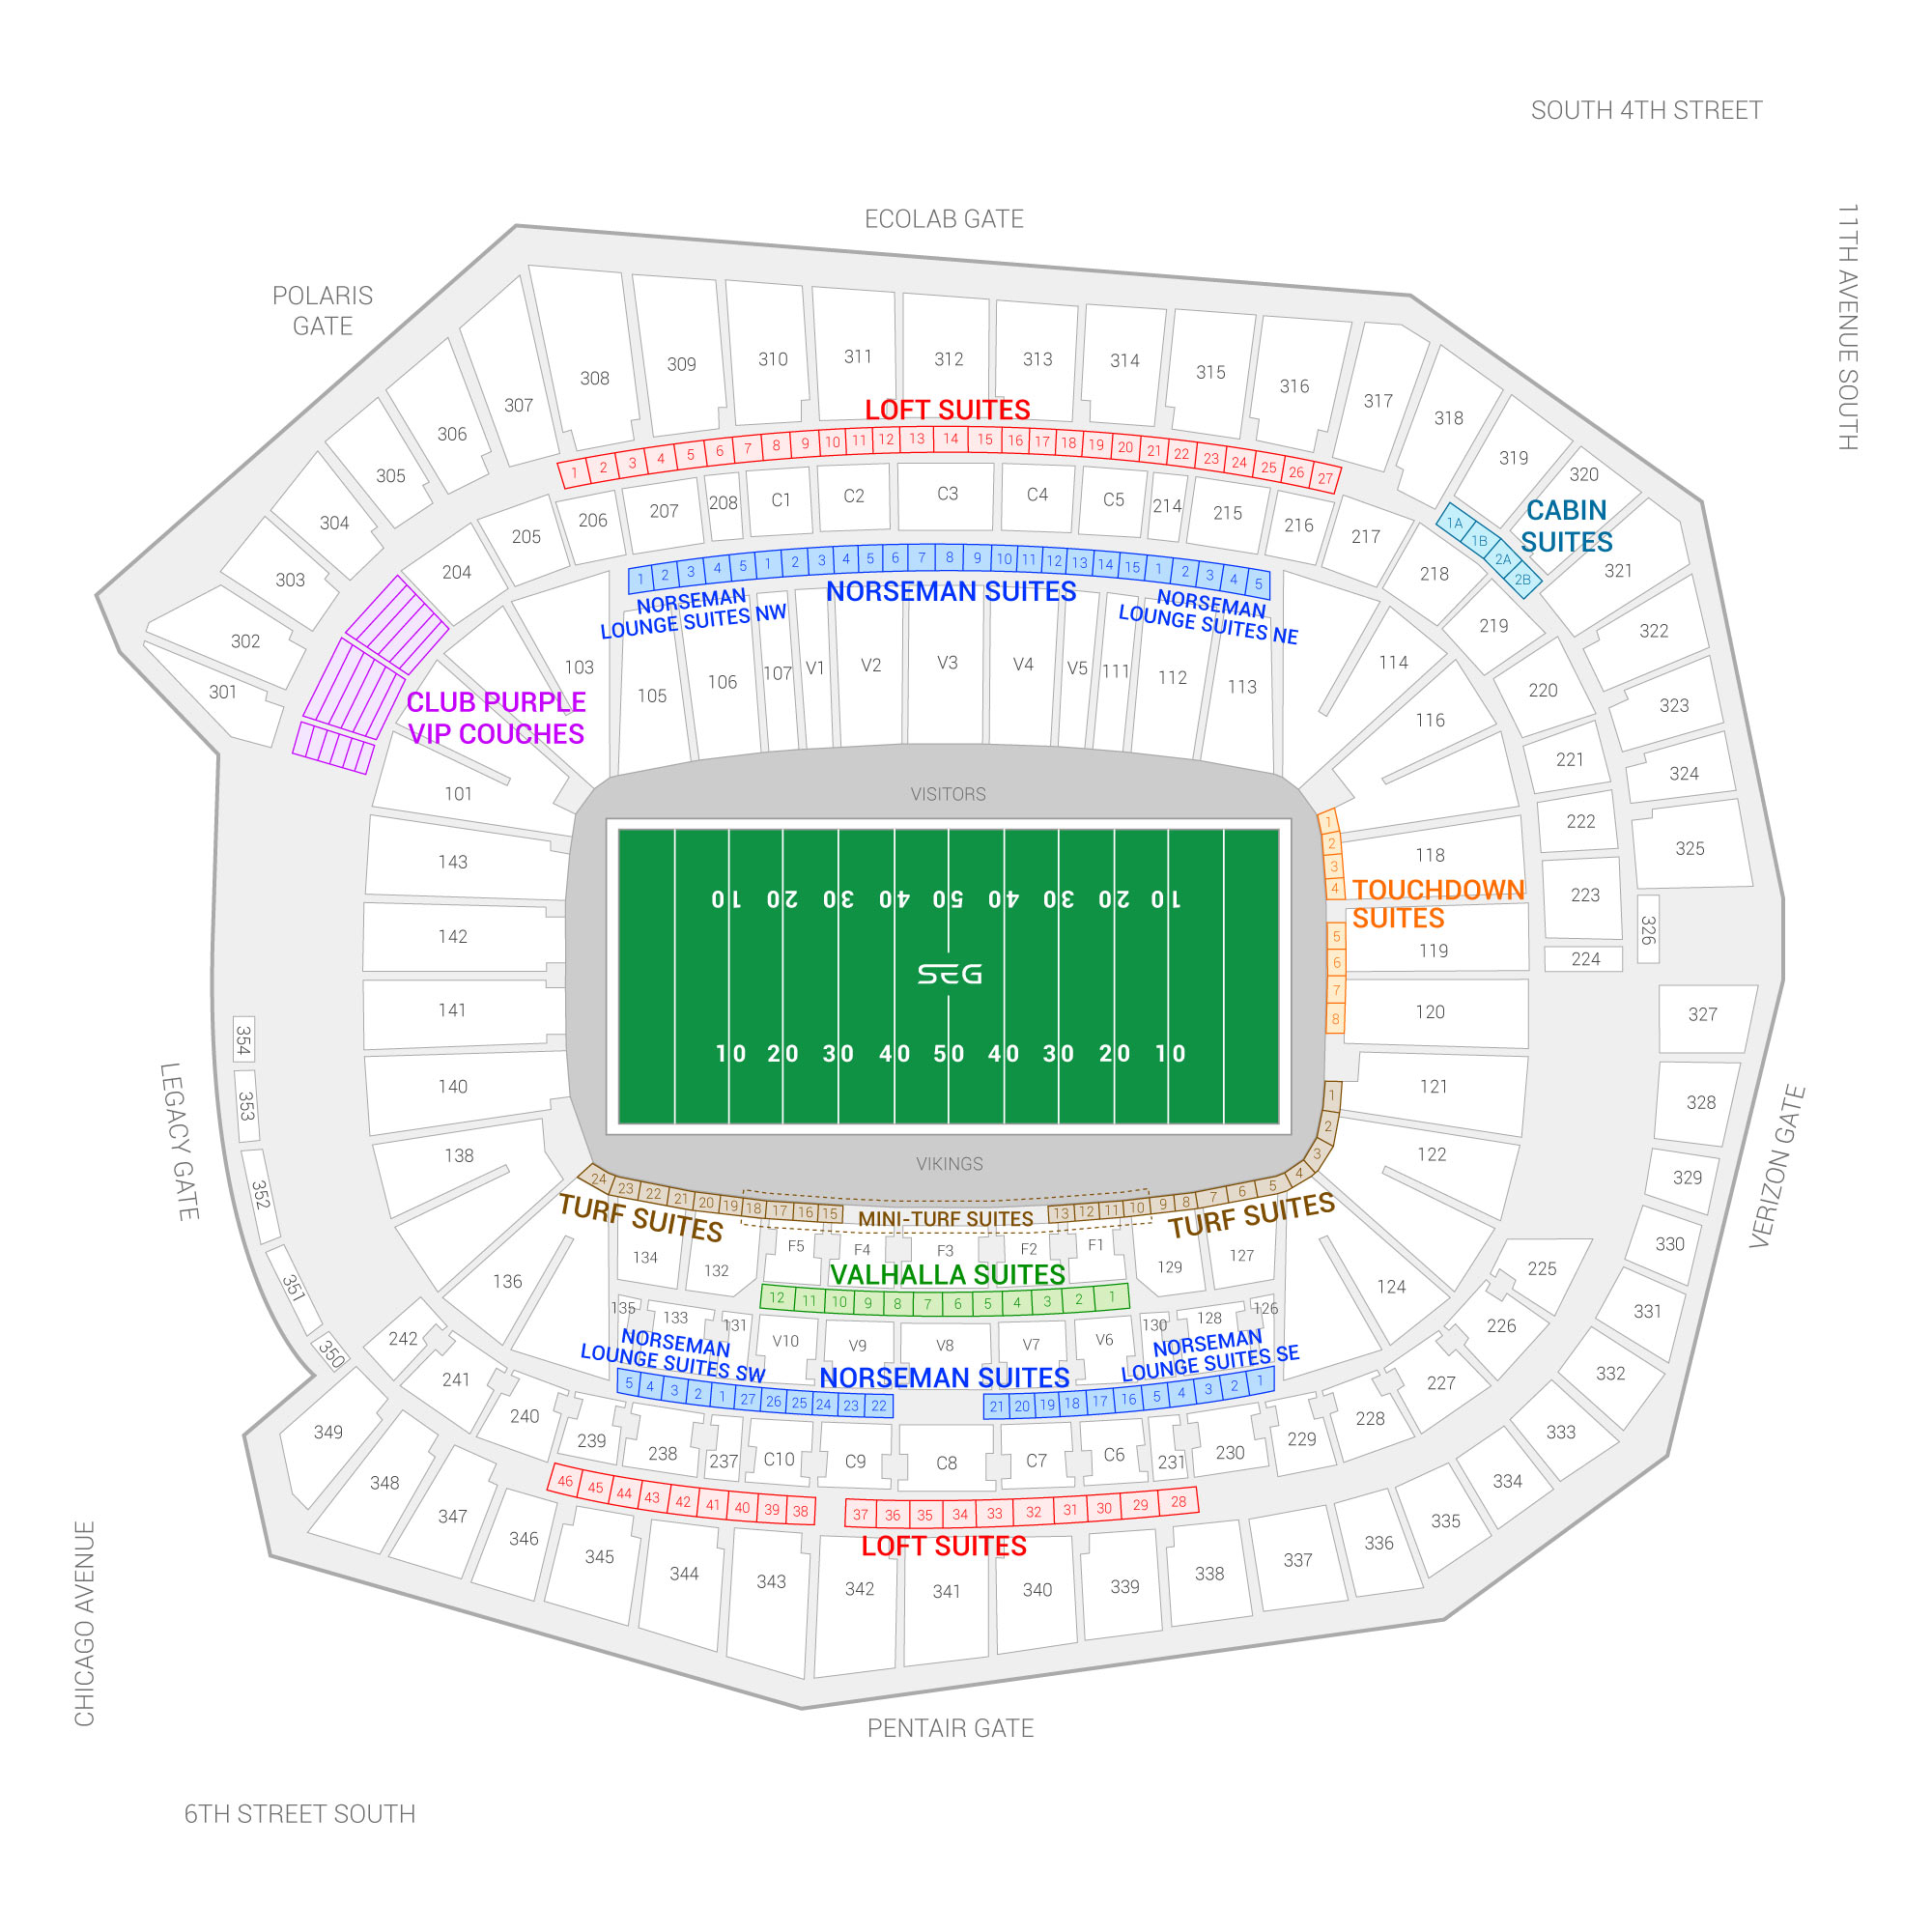 U.S. Bank Stadium / Minnesota Vikings Suite Map and Seating Chart